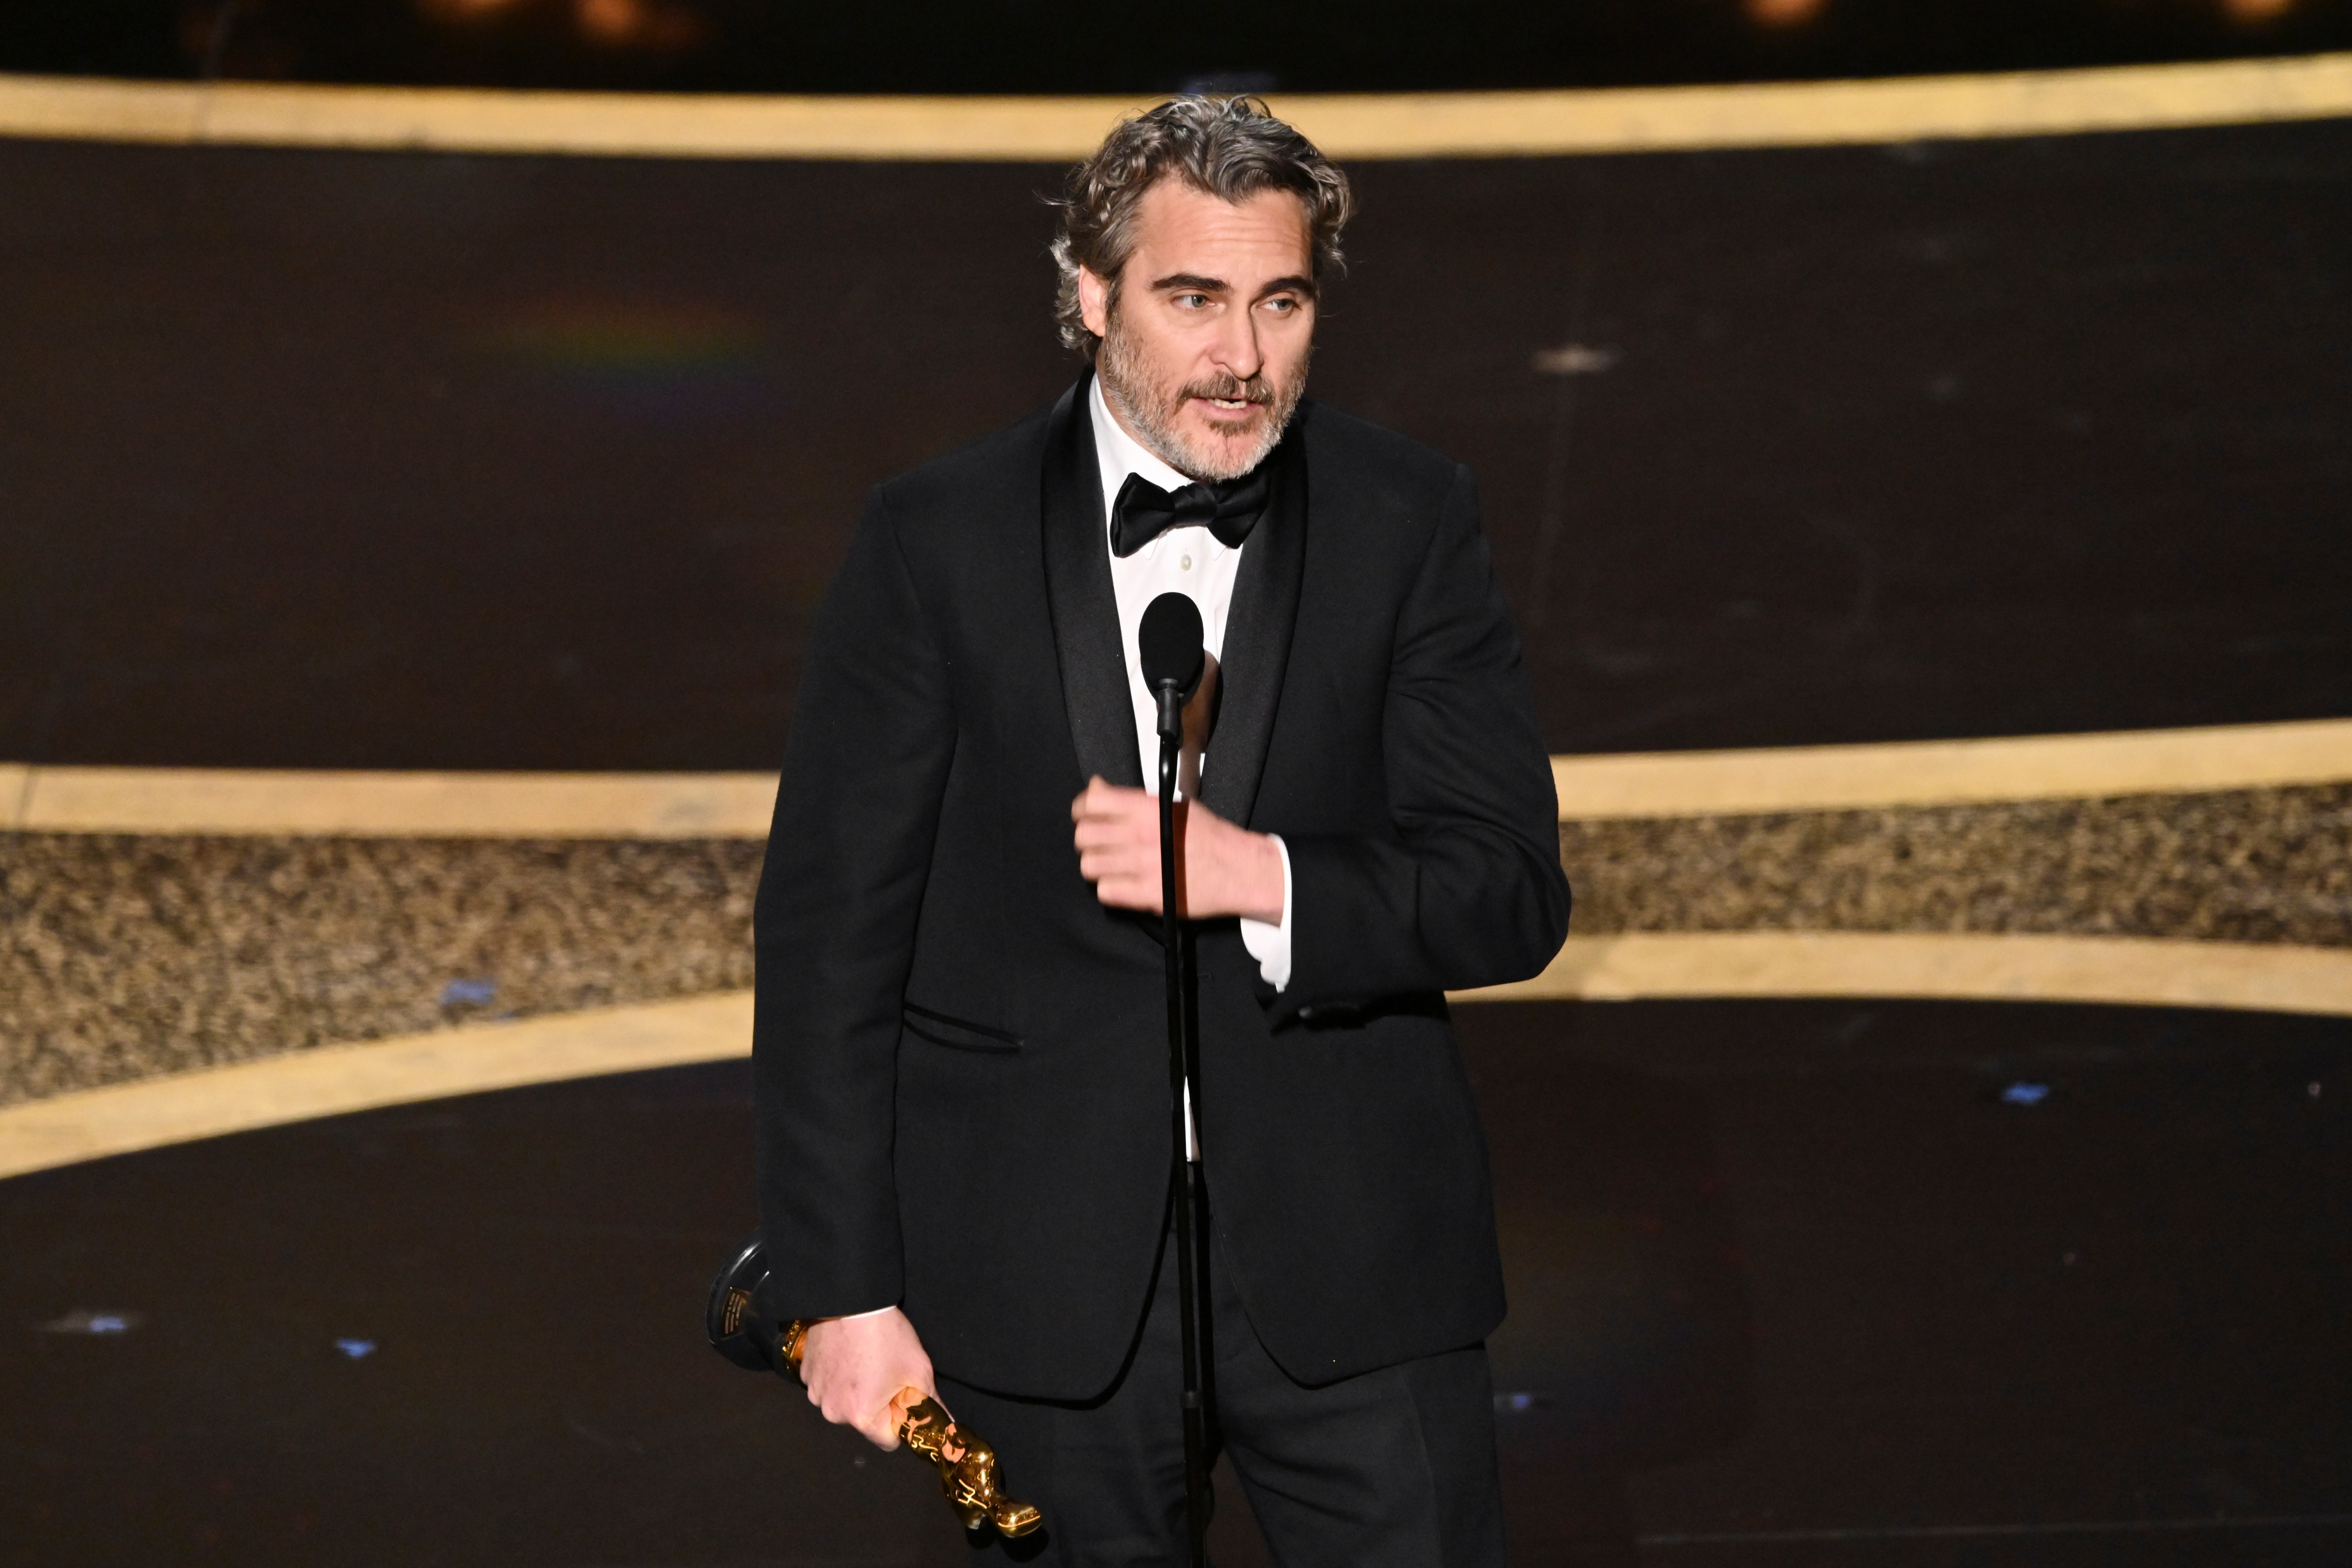 Joaquin Phoenix - Lead Actor - Joker92nd Annual Academy Awards, Show, Los Angeles, USA - 09 Feb 2020